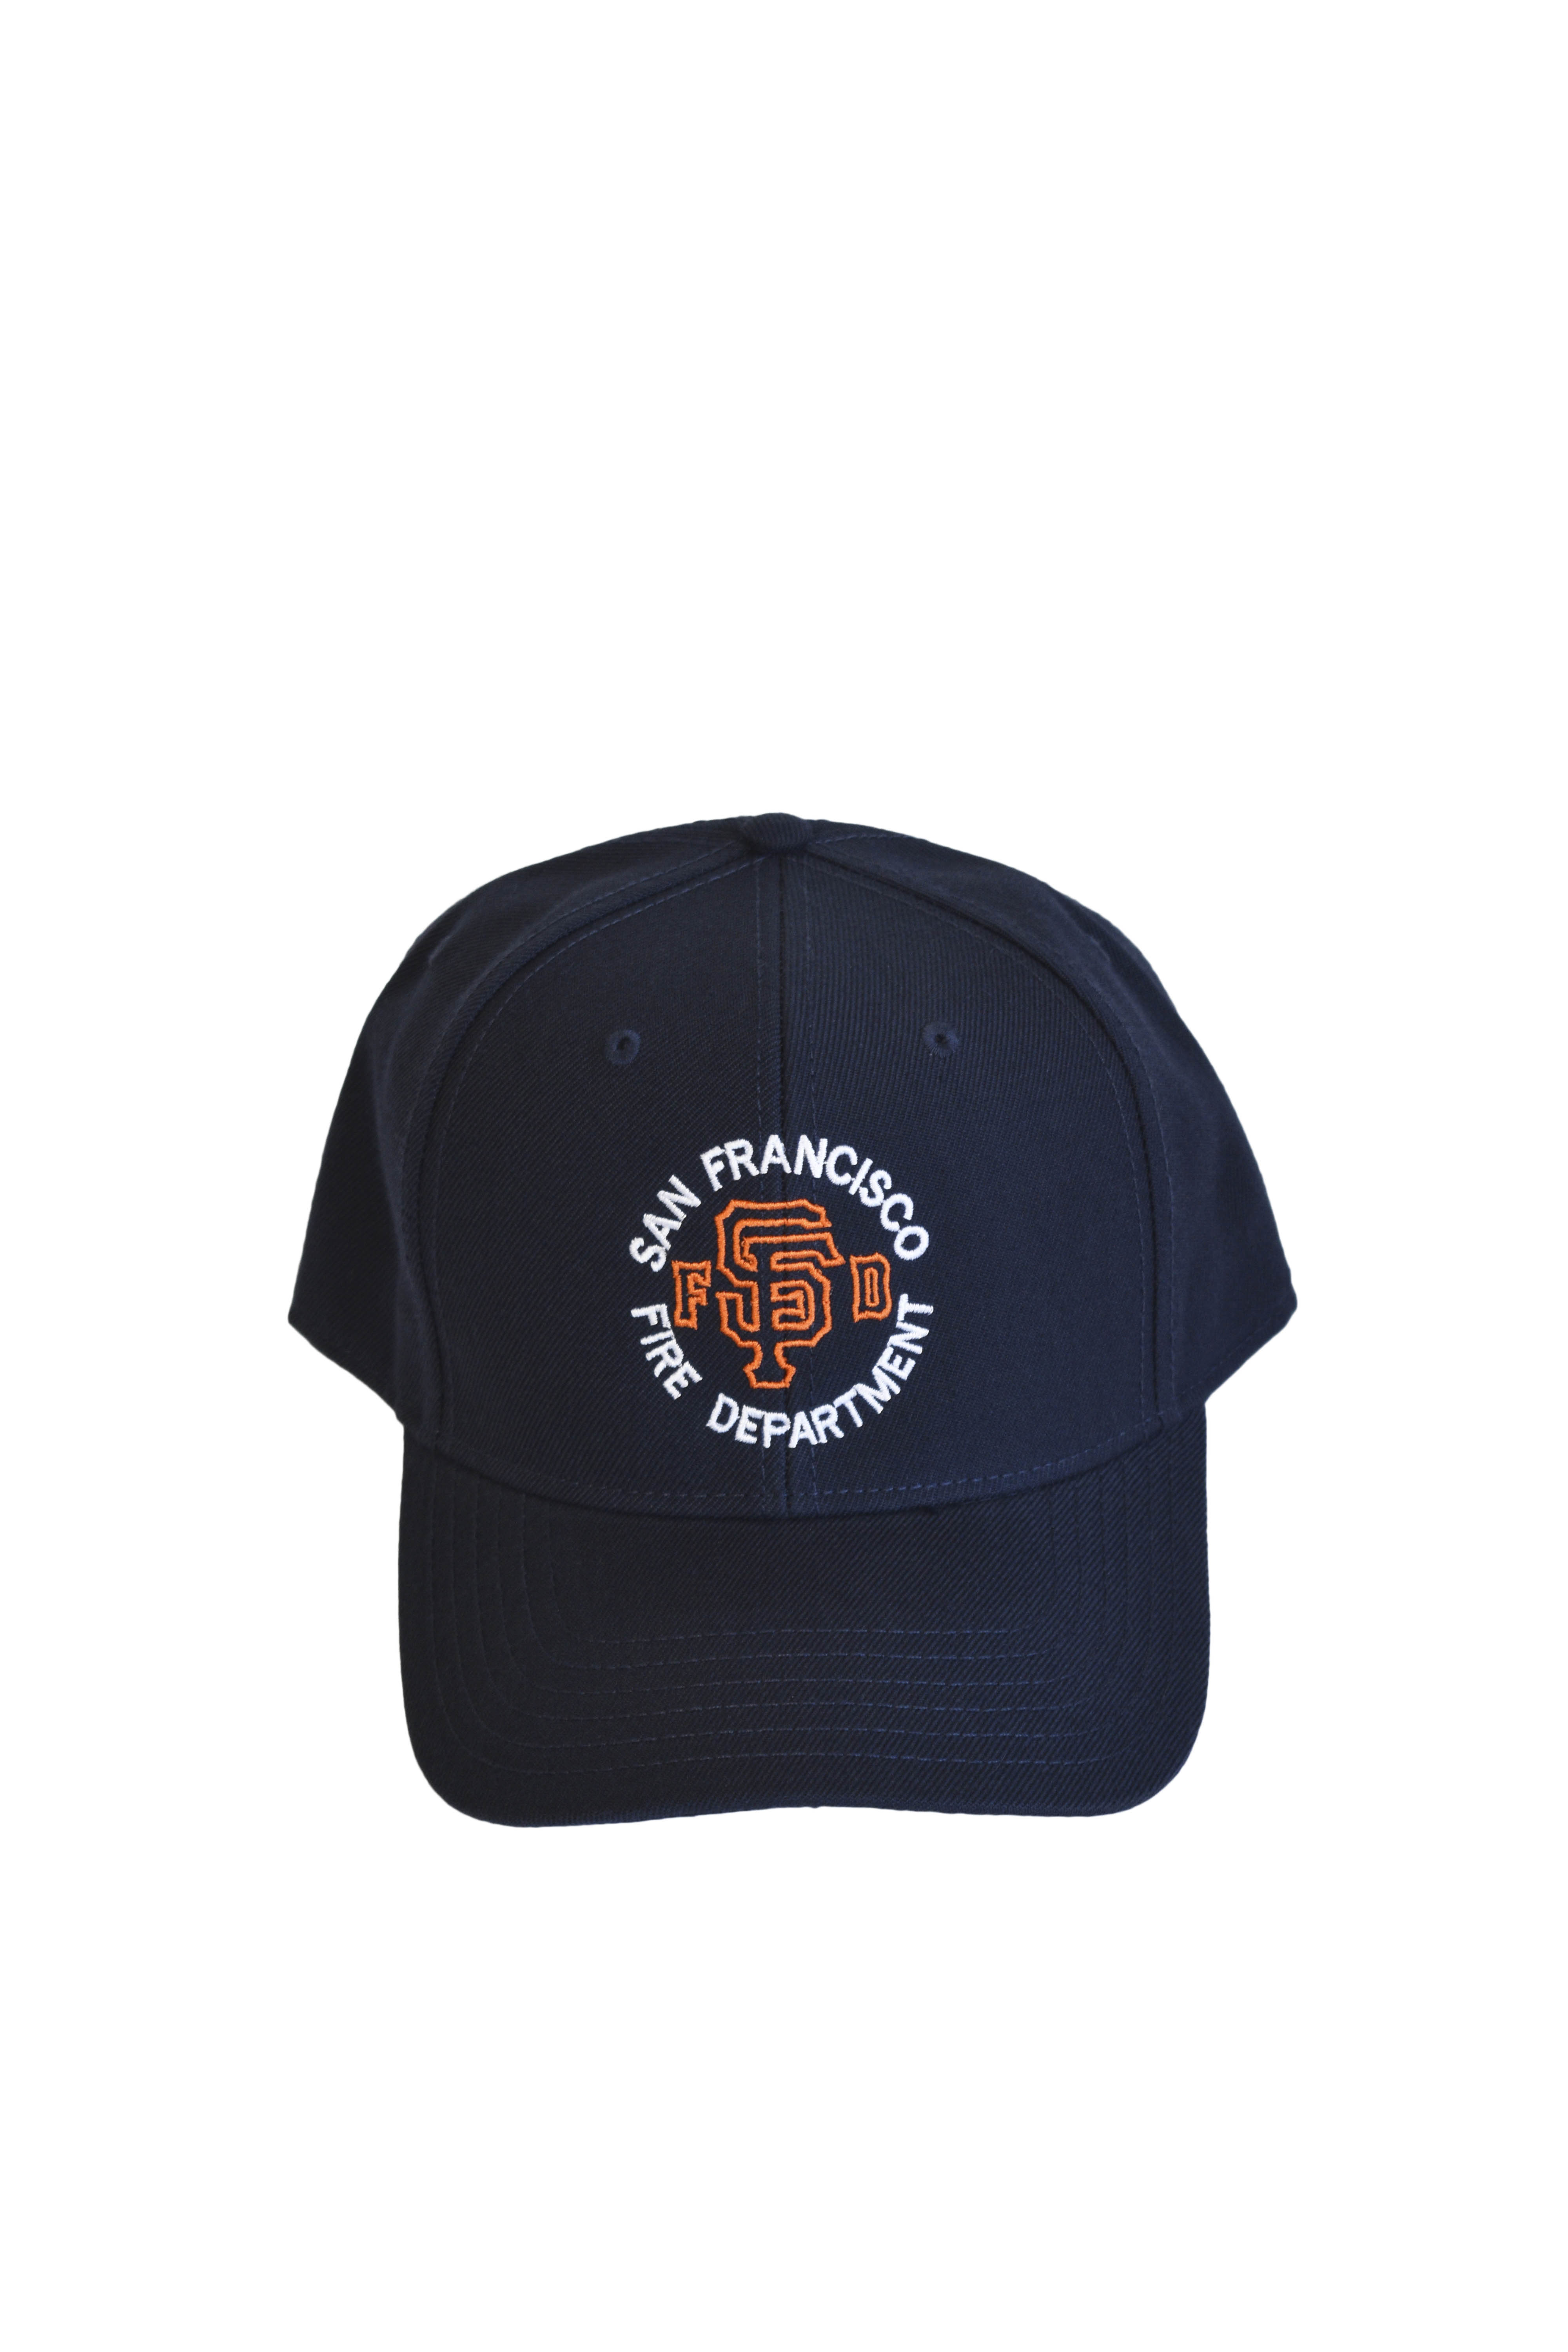 SFFD GIANTS CAP embroidery logo